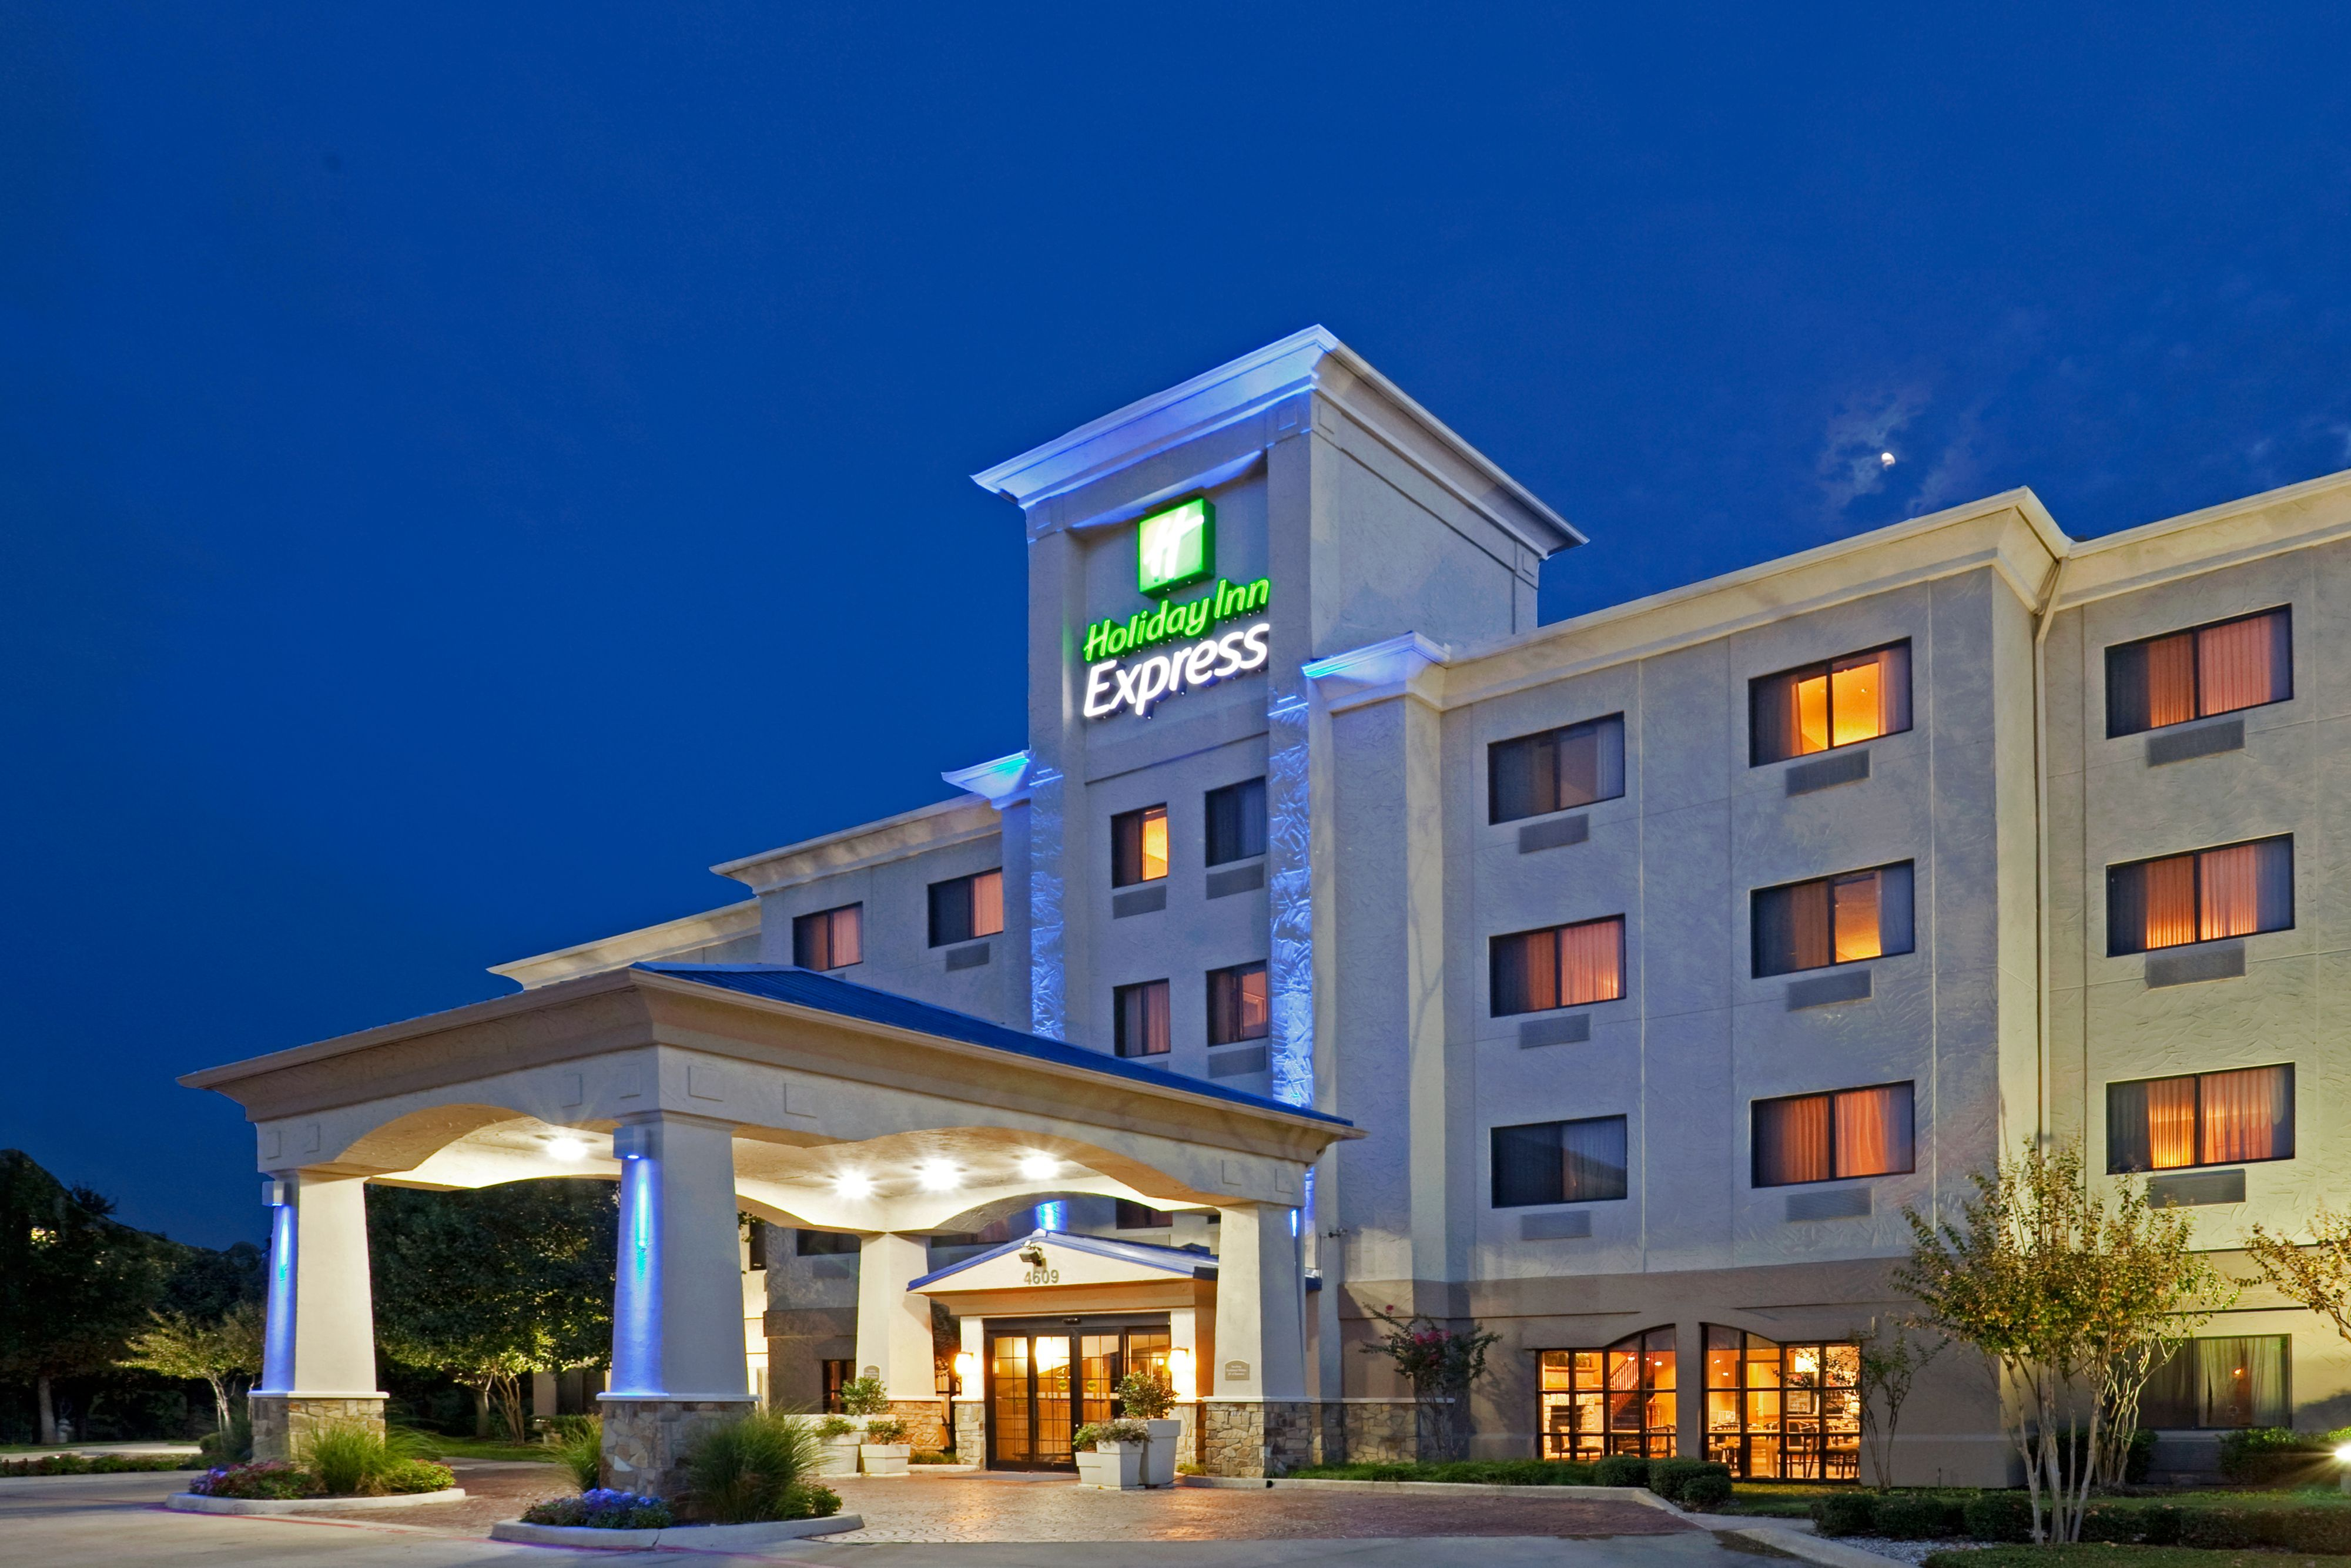 Holiday Inn Express & Suites Fort Worth I-35 Western Center image 2